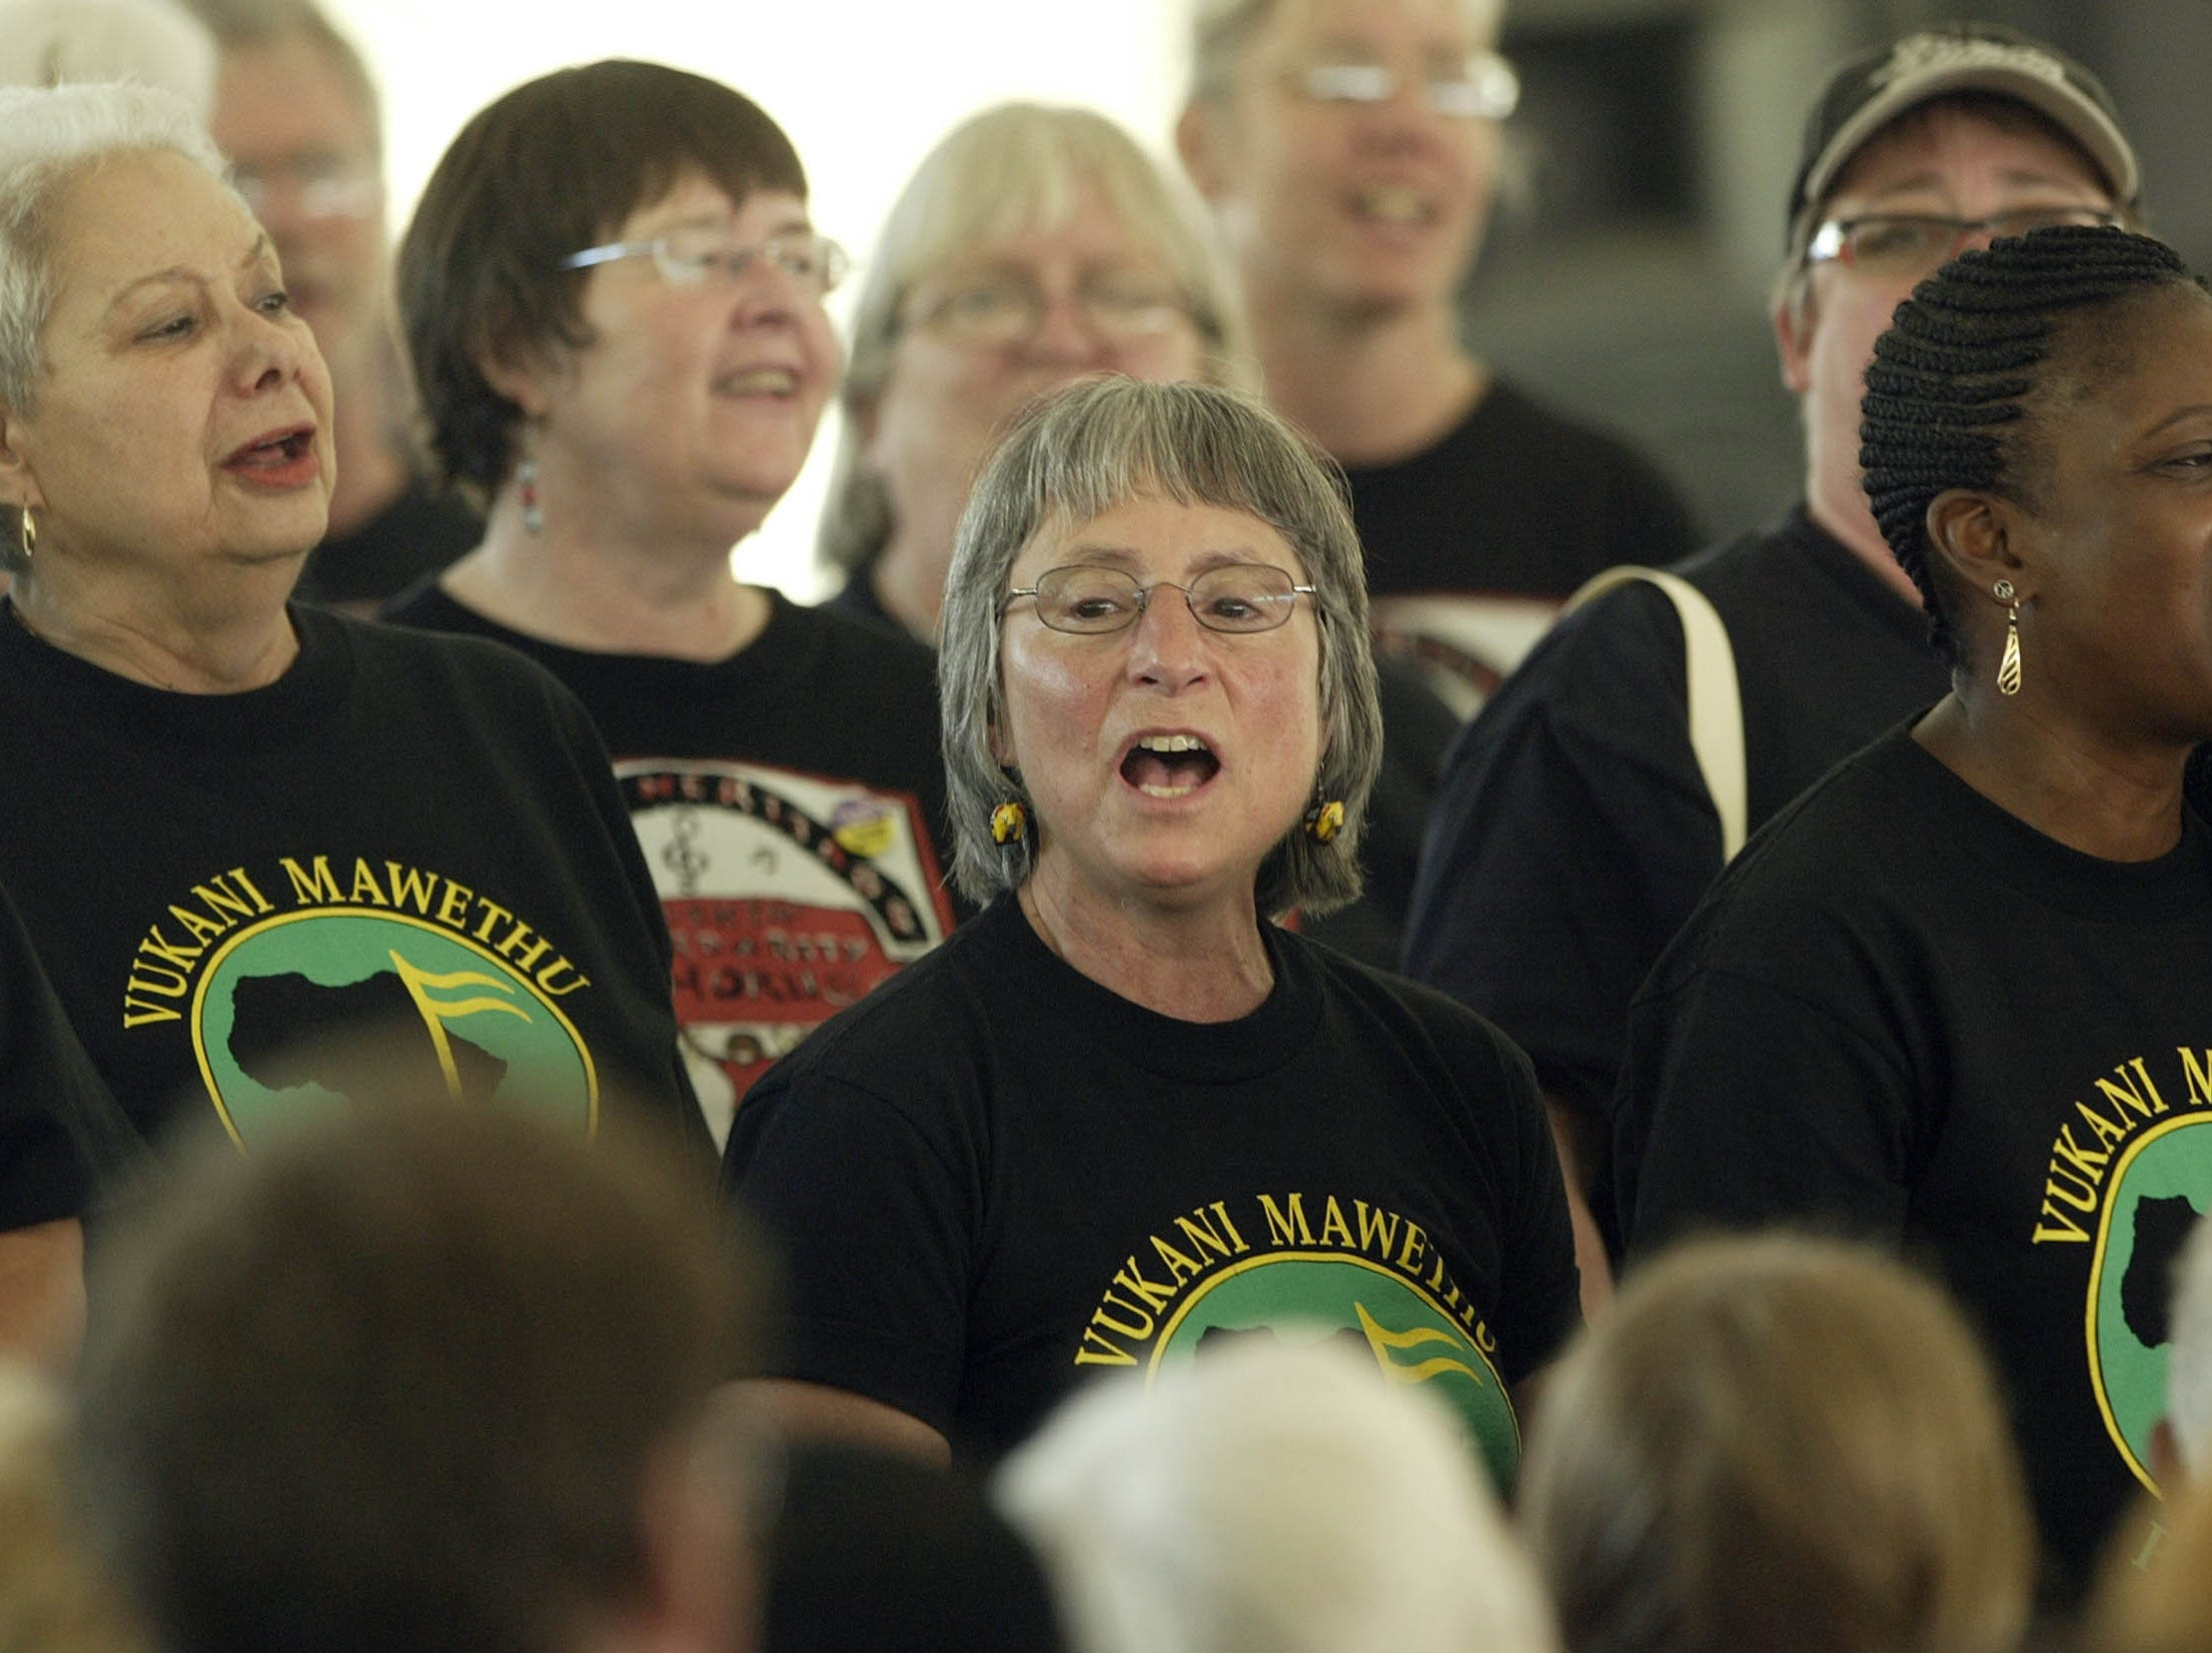 Members of the Vukani Mawethu Chorus sing during a gathering to mark the 75th Anniversary of the Highlander Center Saturday, Sept. 1, 2007 in New Market, Tenn. The little school tucked away in the east Tennessee mountains may have faded from the public spotlight, but it was once at the center of the struggle for civil rights.